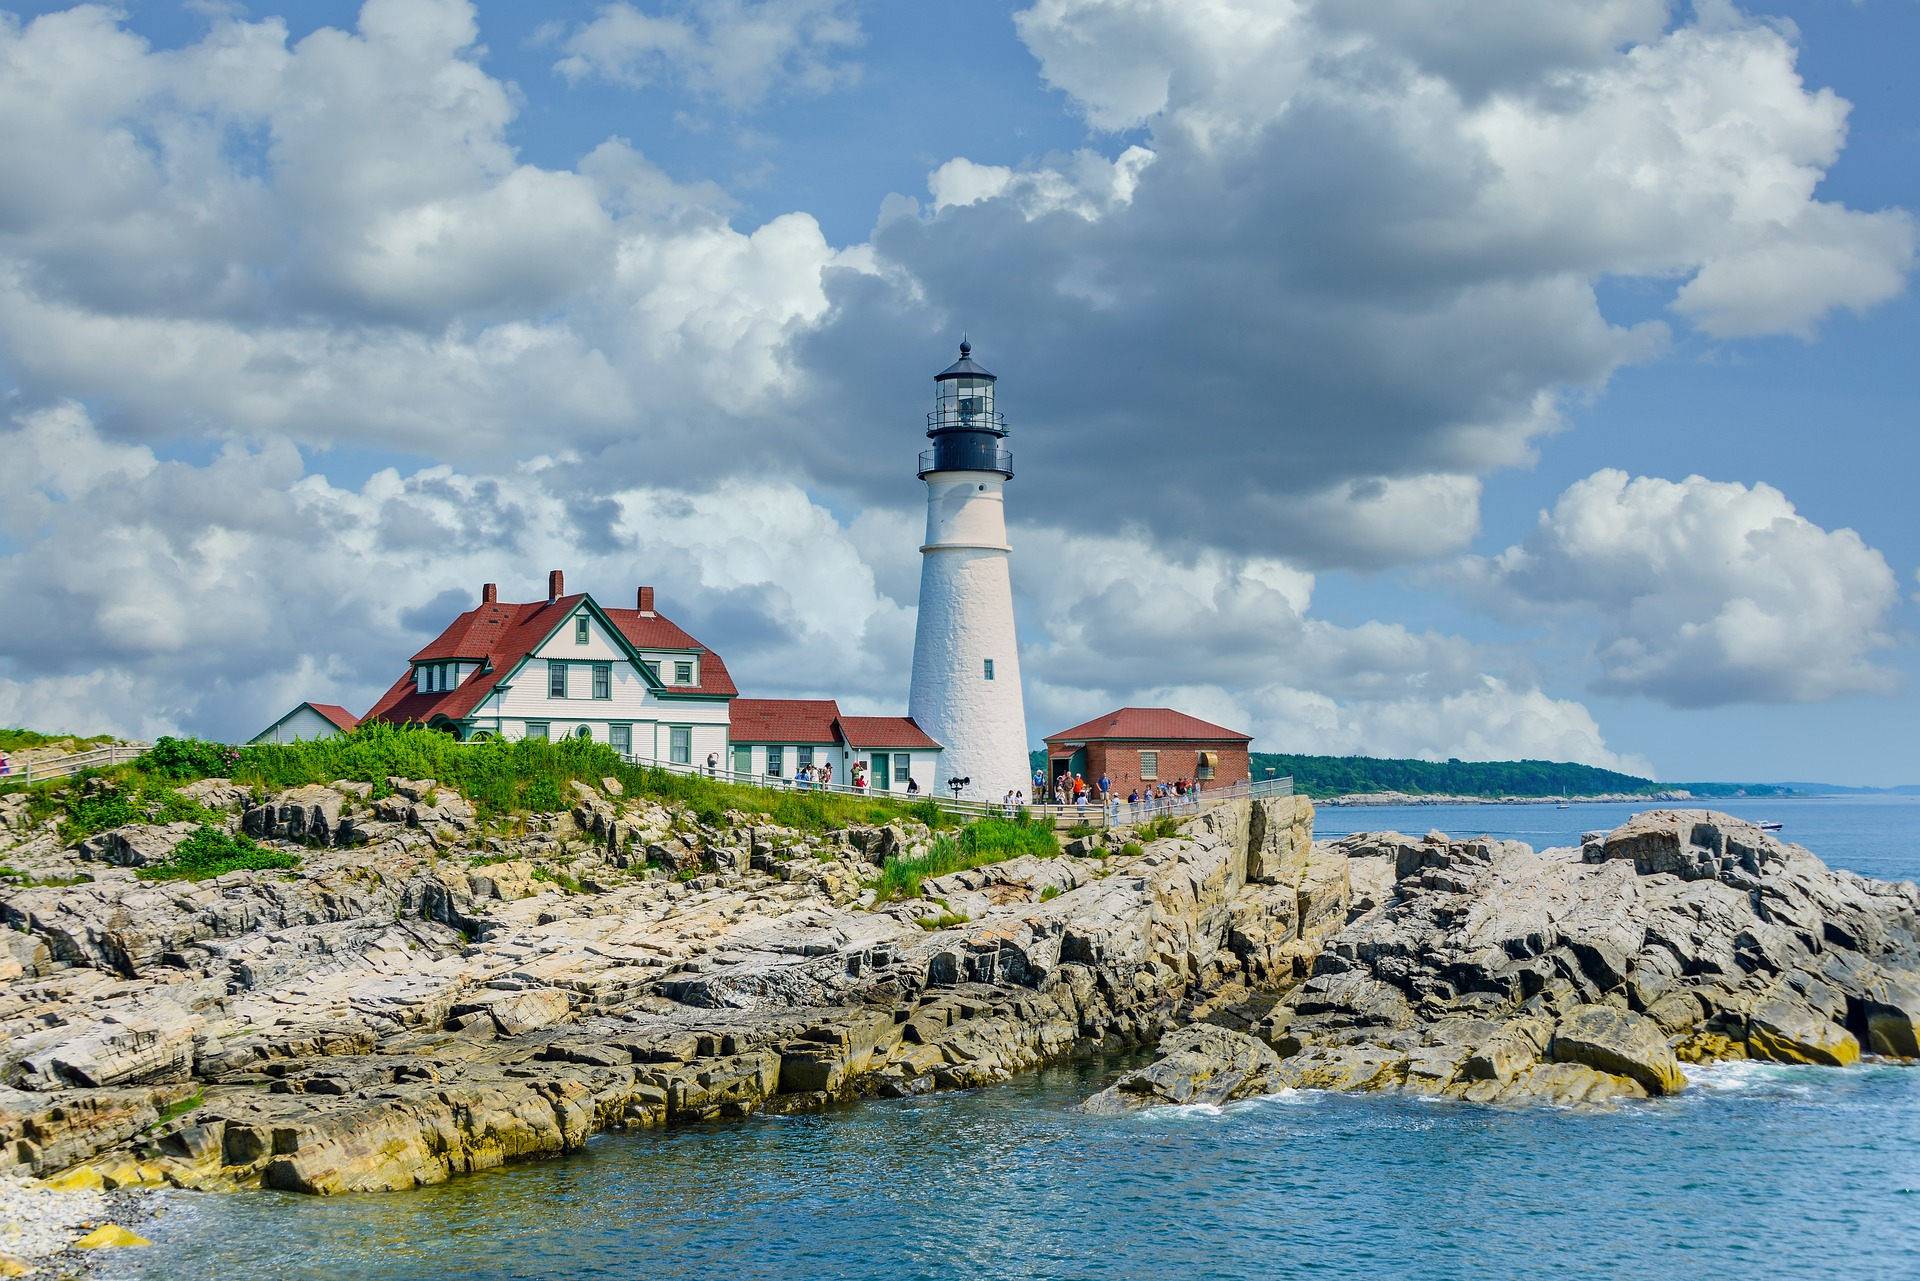 The Old Port and Portland Head Lighthouse - Top attraction to see in Maine